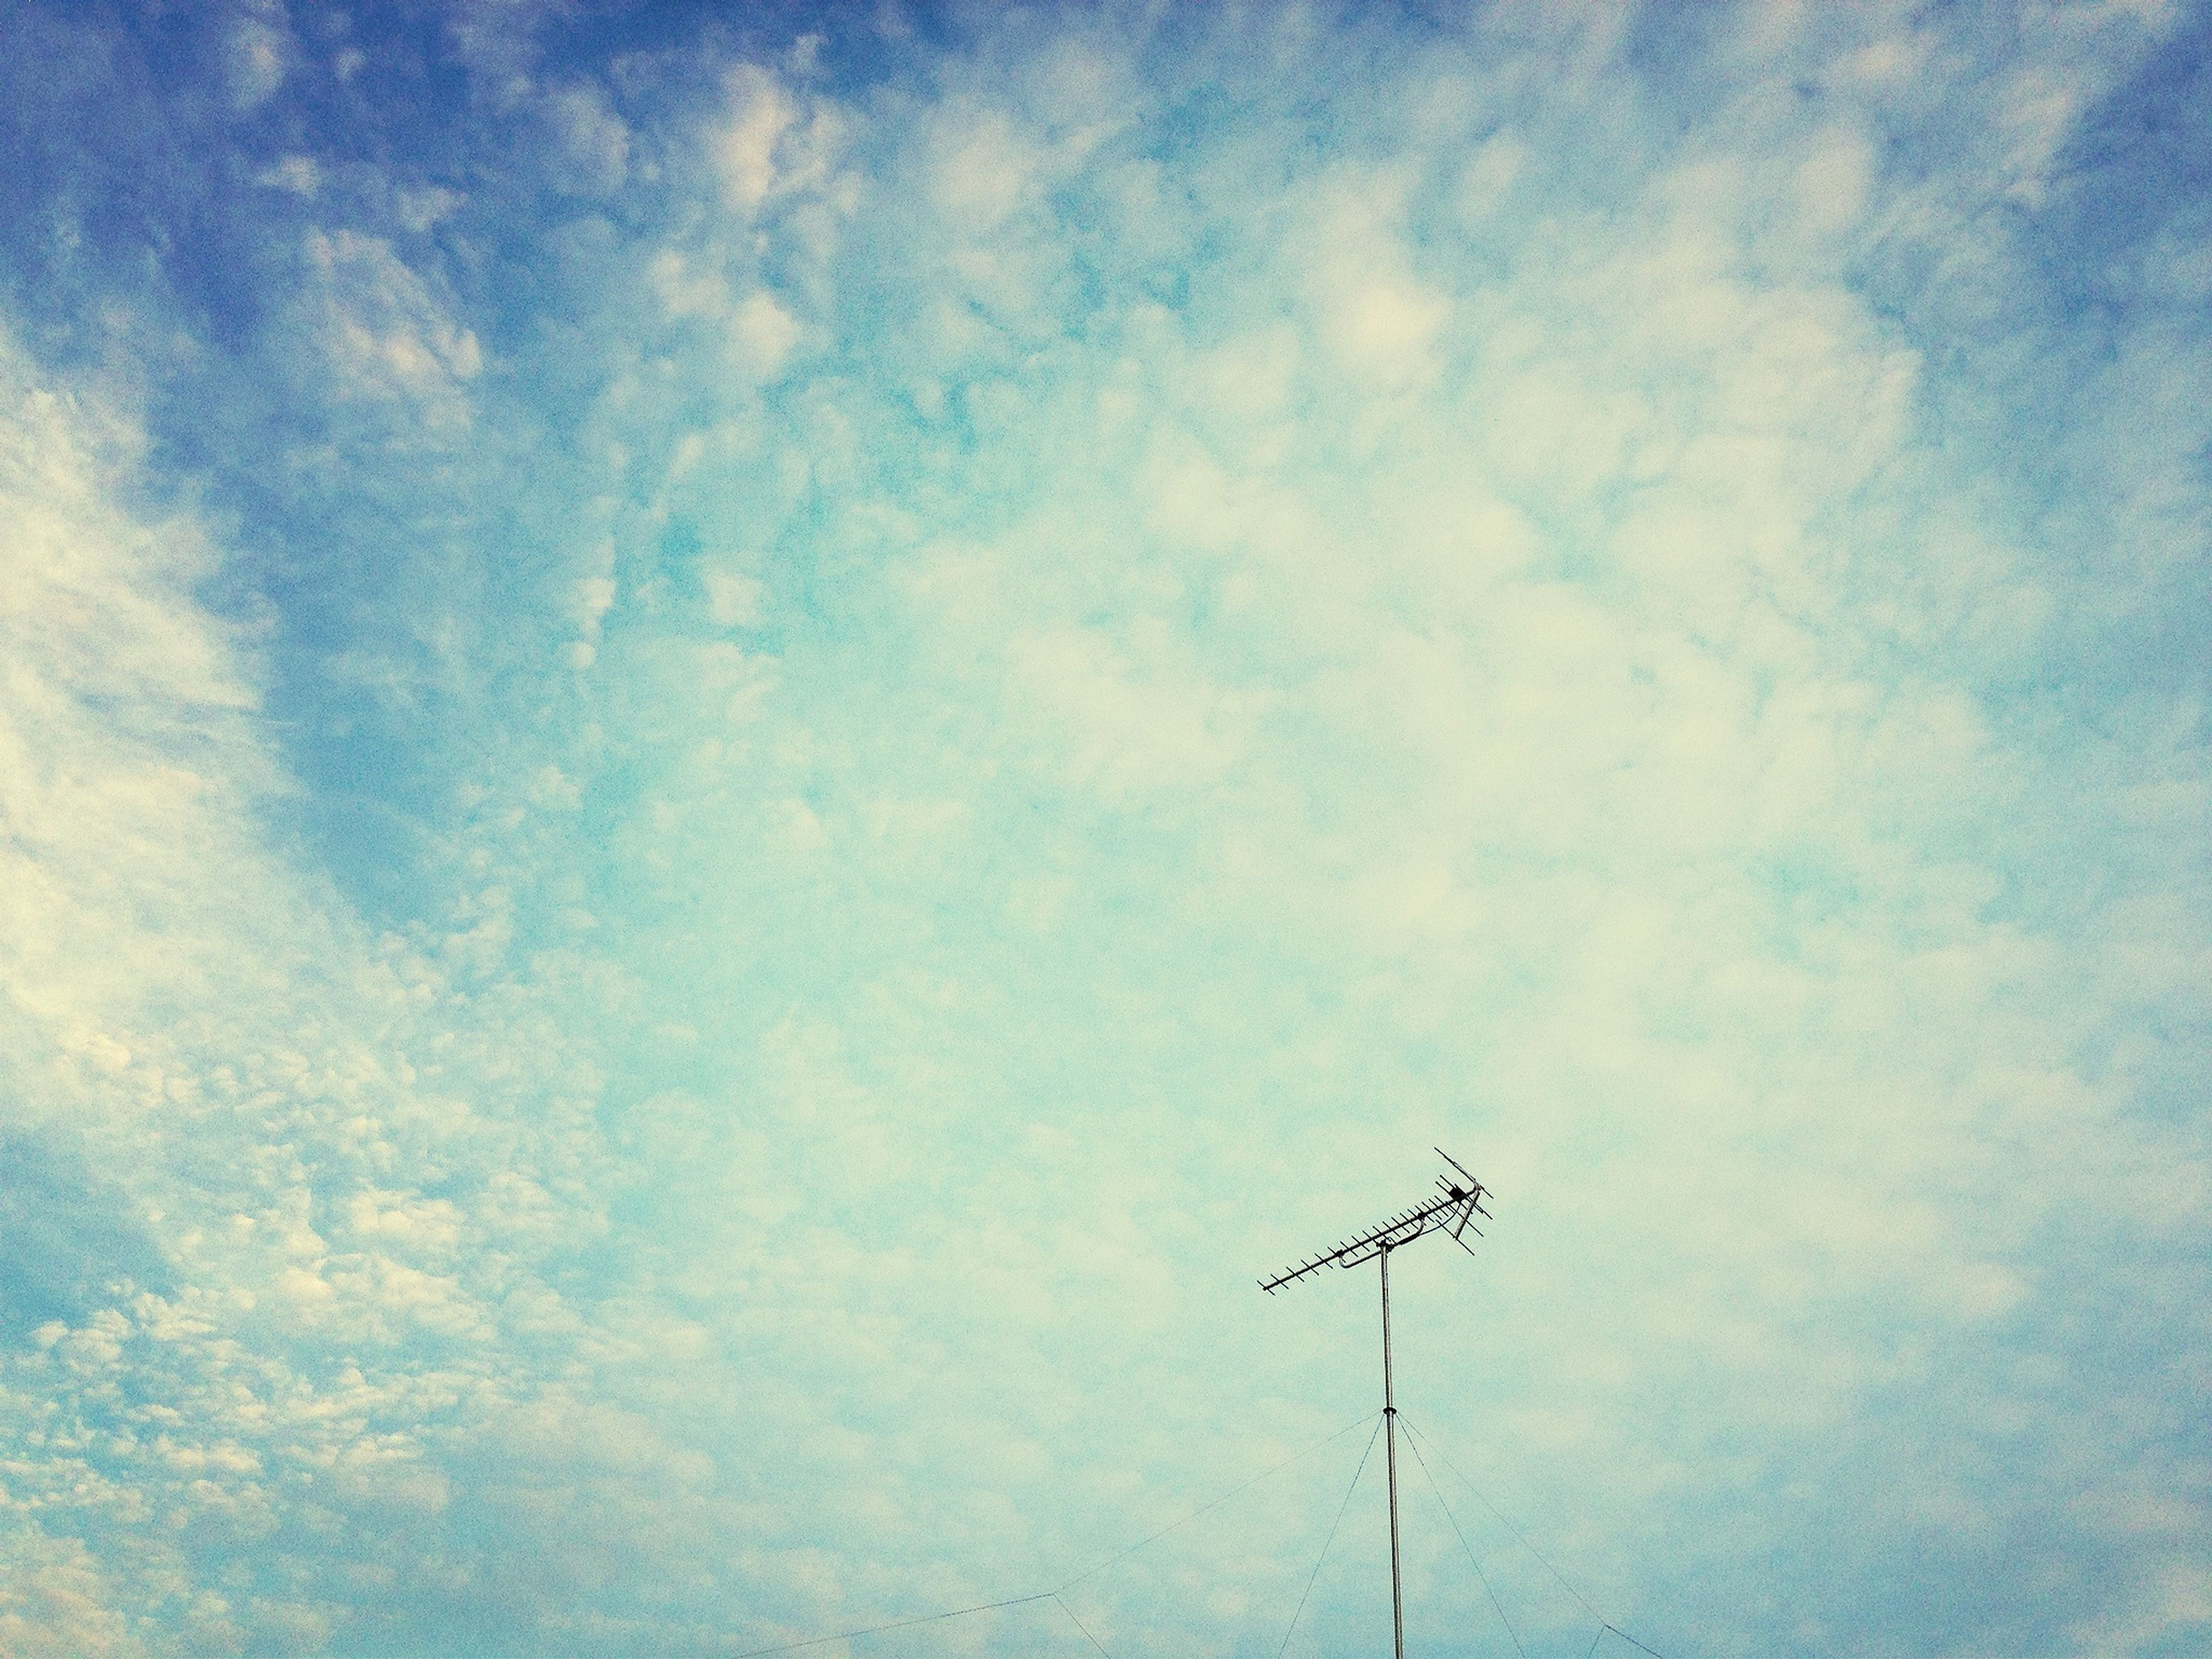 low angle view, sky, cloud - sky, blue, street light, cloudy, cloud, lighting equipment, technology, power line, nature, outdoors, day, electricity, no people, pole, high section, tranquility, silhouette, fuel and power generation